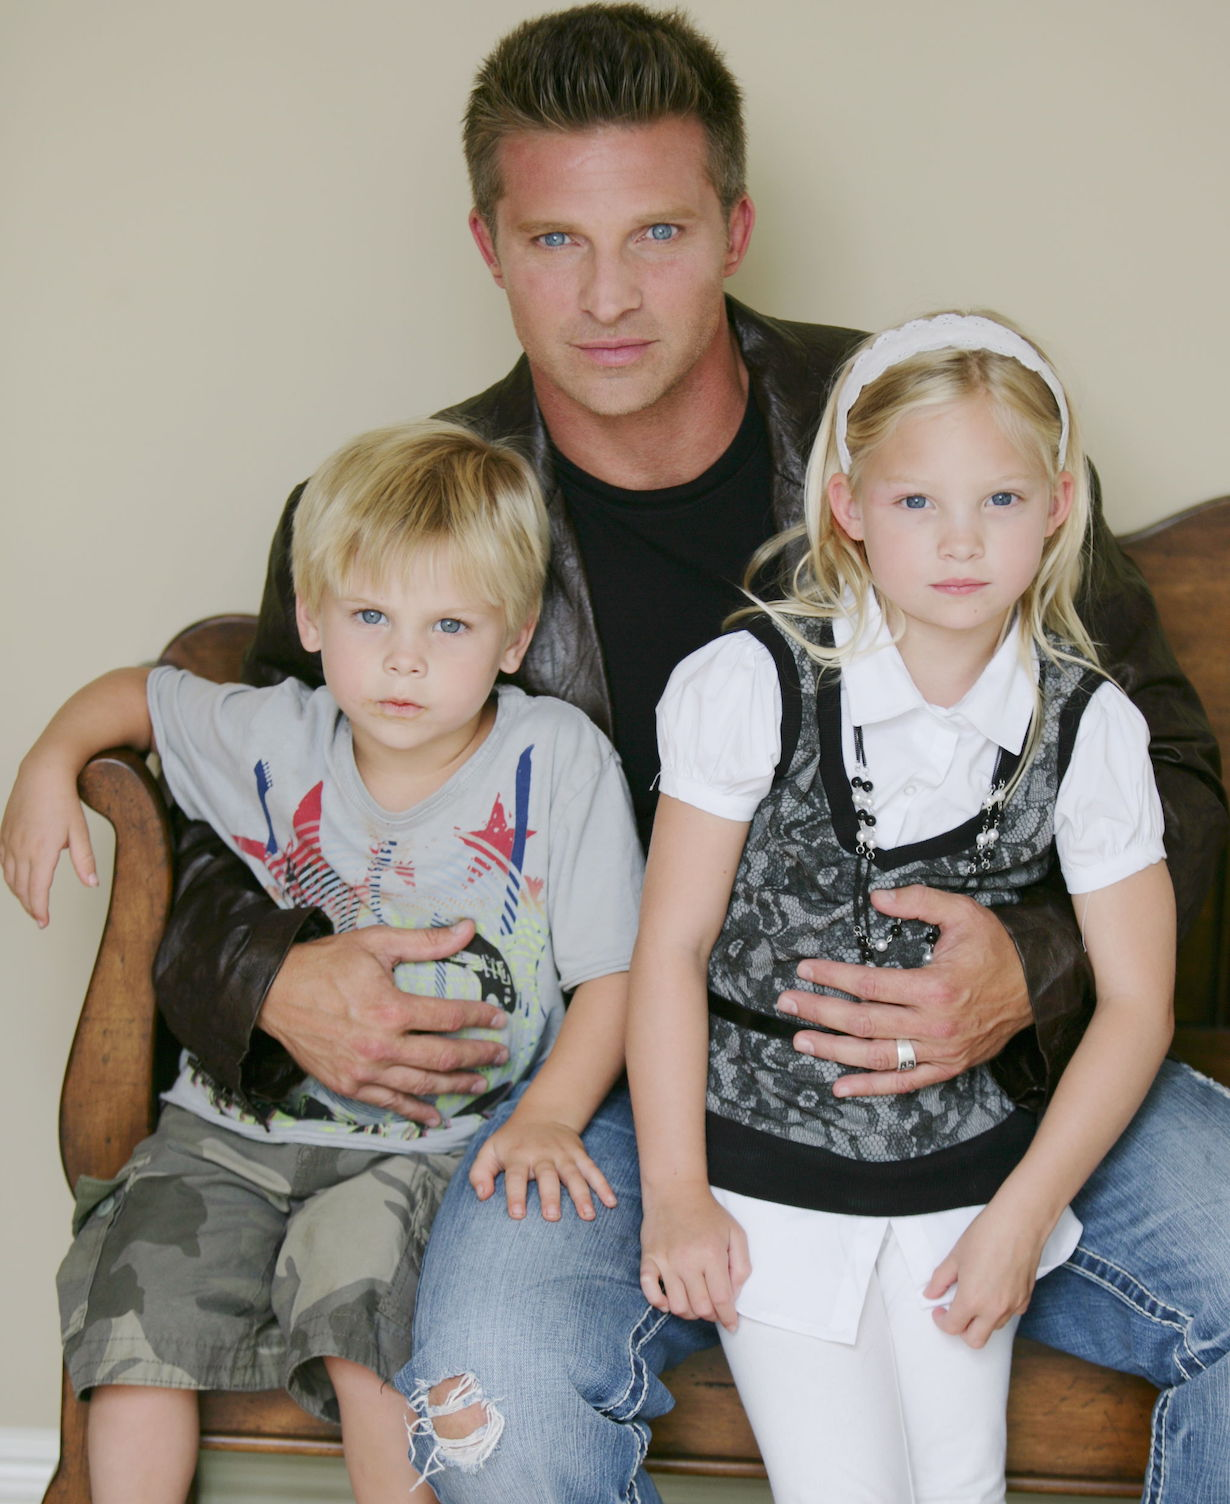 Steve Burton, Daughter Makena, Son JackSteve Burton Photo ShootLos Angles8/22/10©John Paschal/jpistudios.com310-657-9661